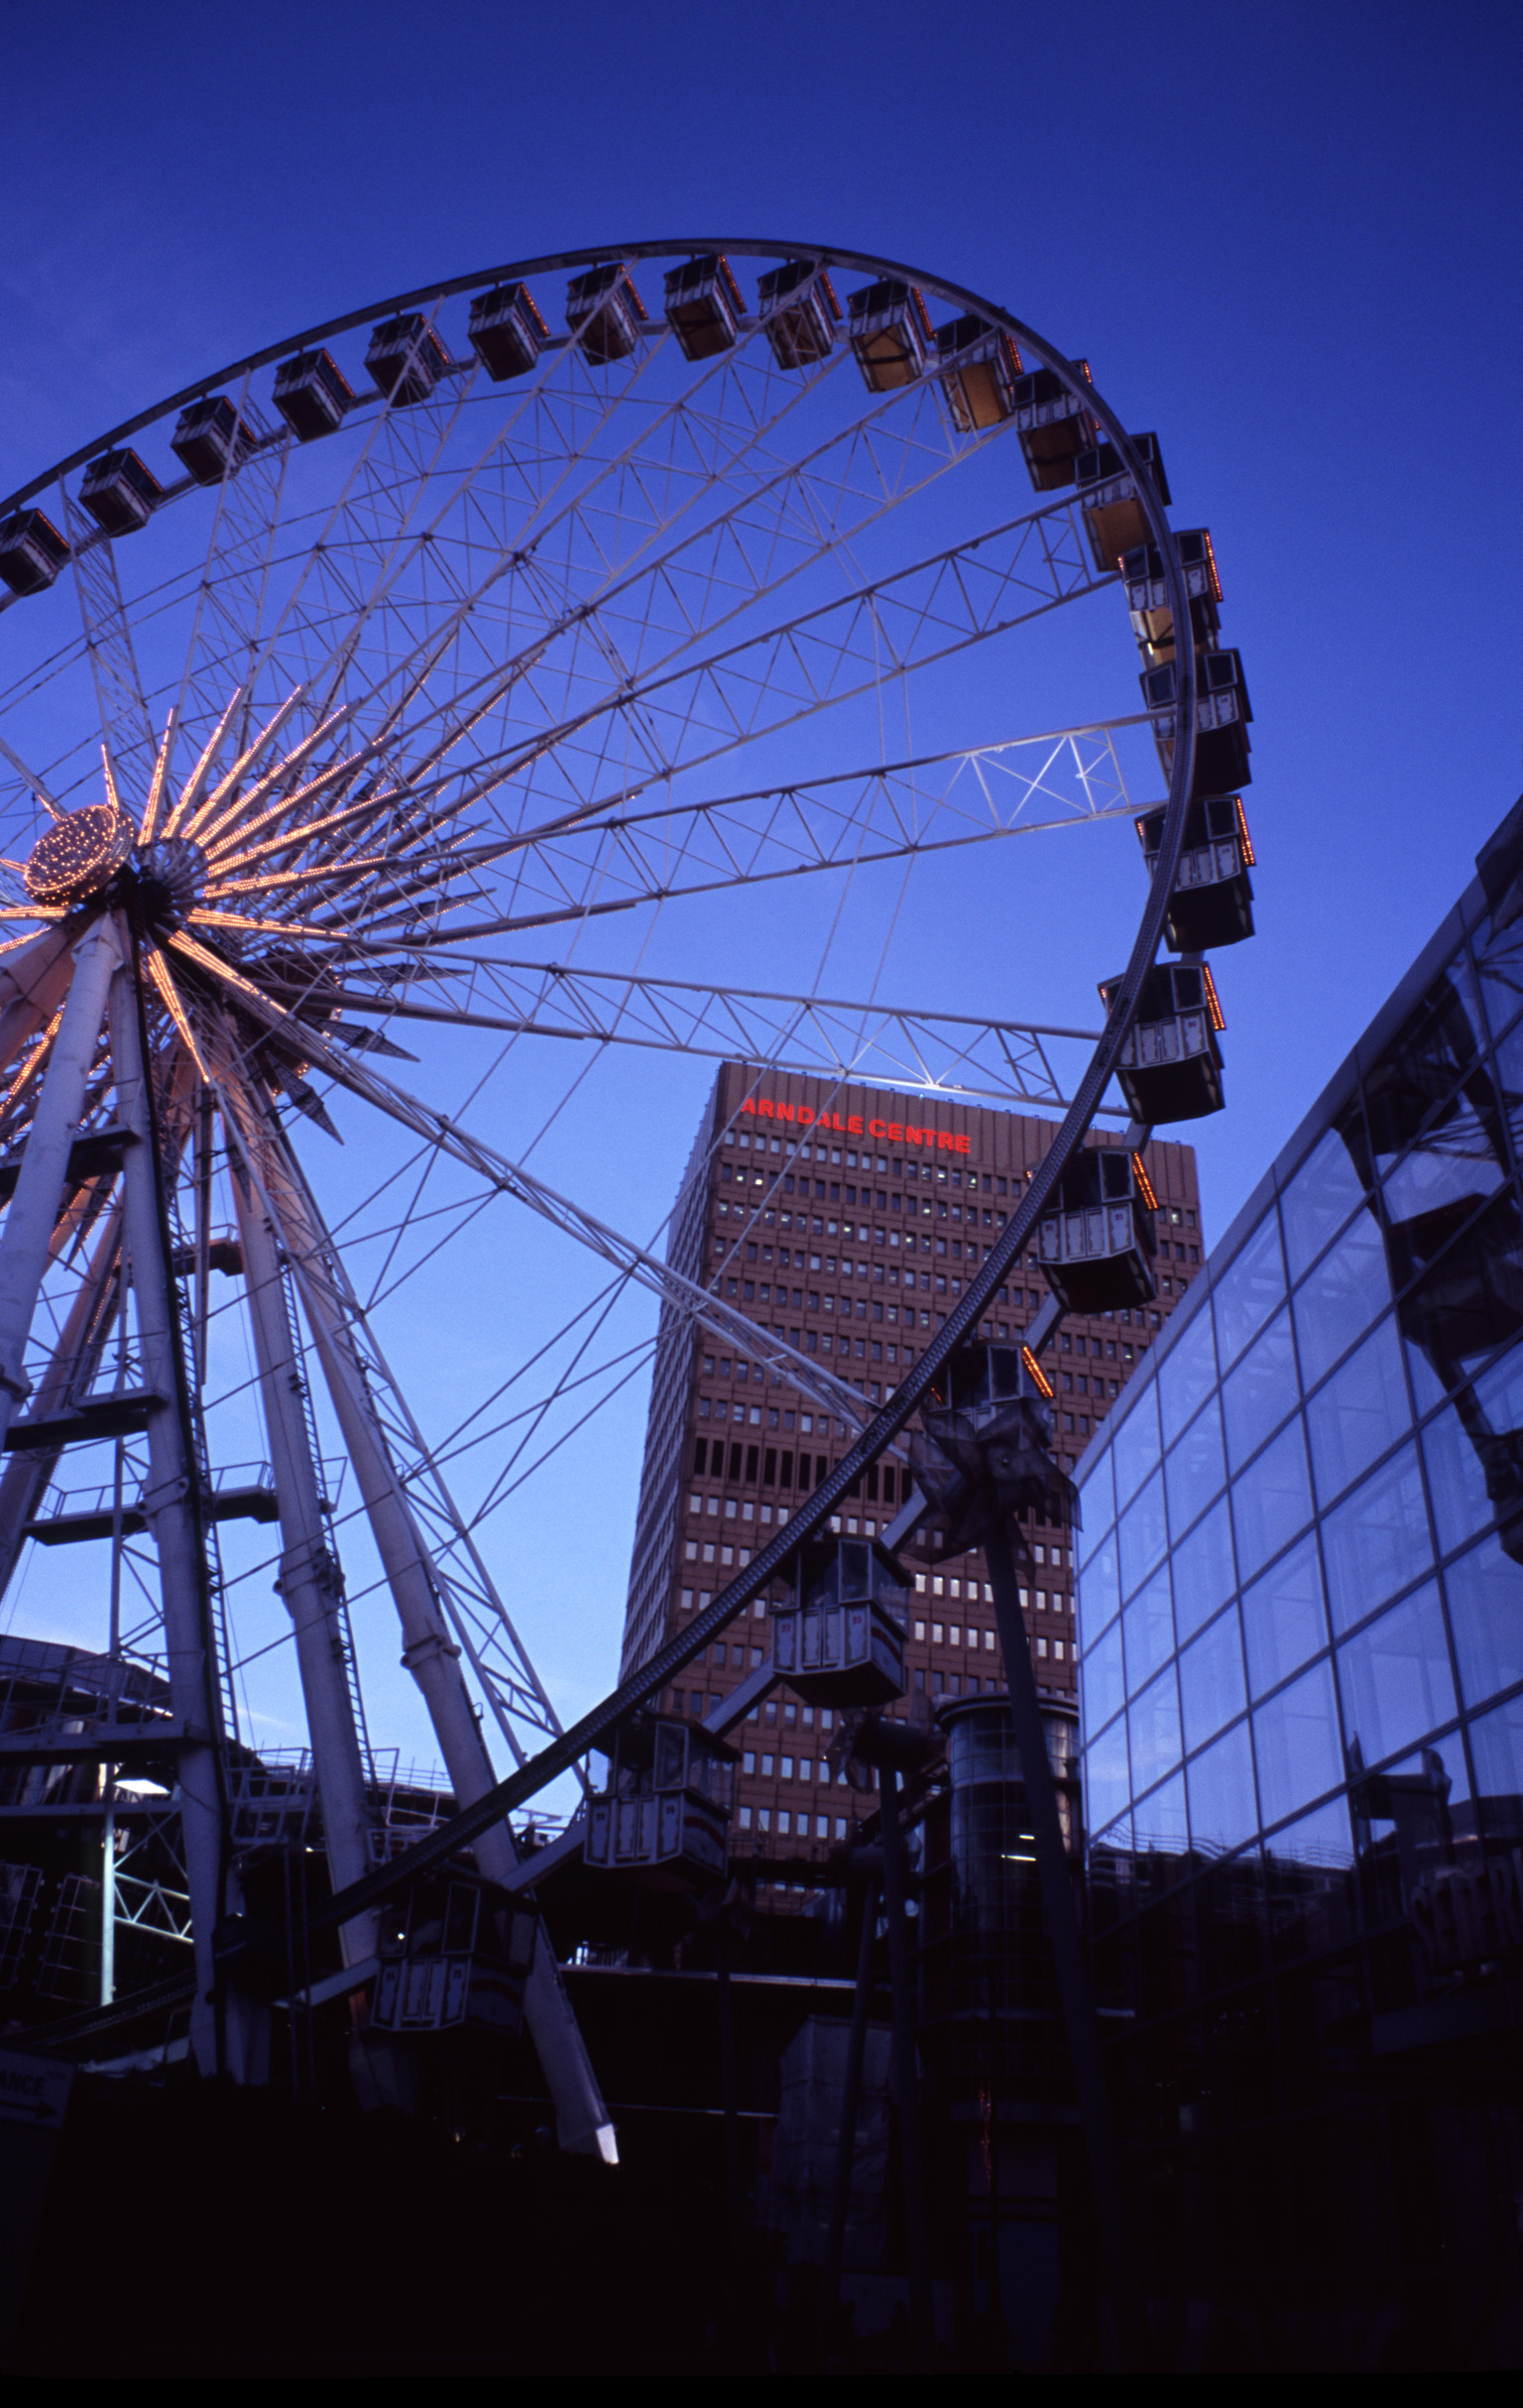 The Manchester Wheel - Famous Transportable Ferris wheel Installation at Piccadilly Gardens, Manchester, England. Captured at Night Time.